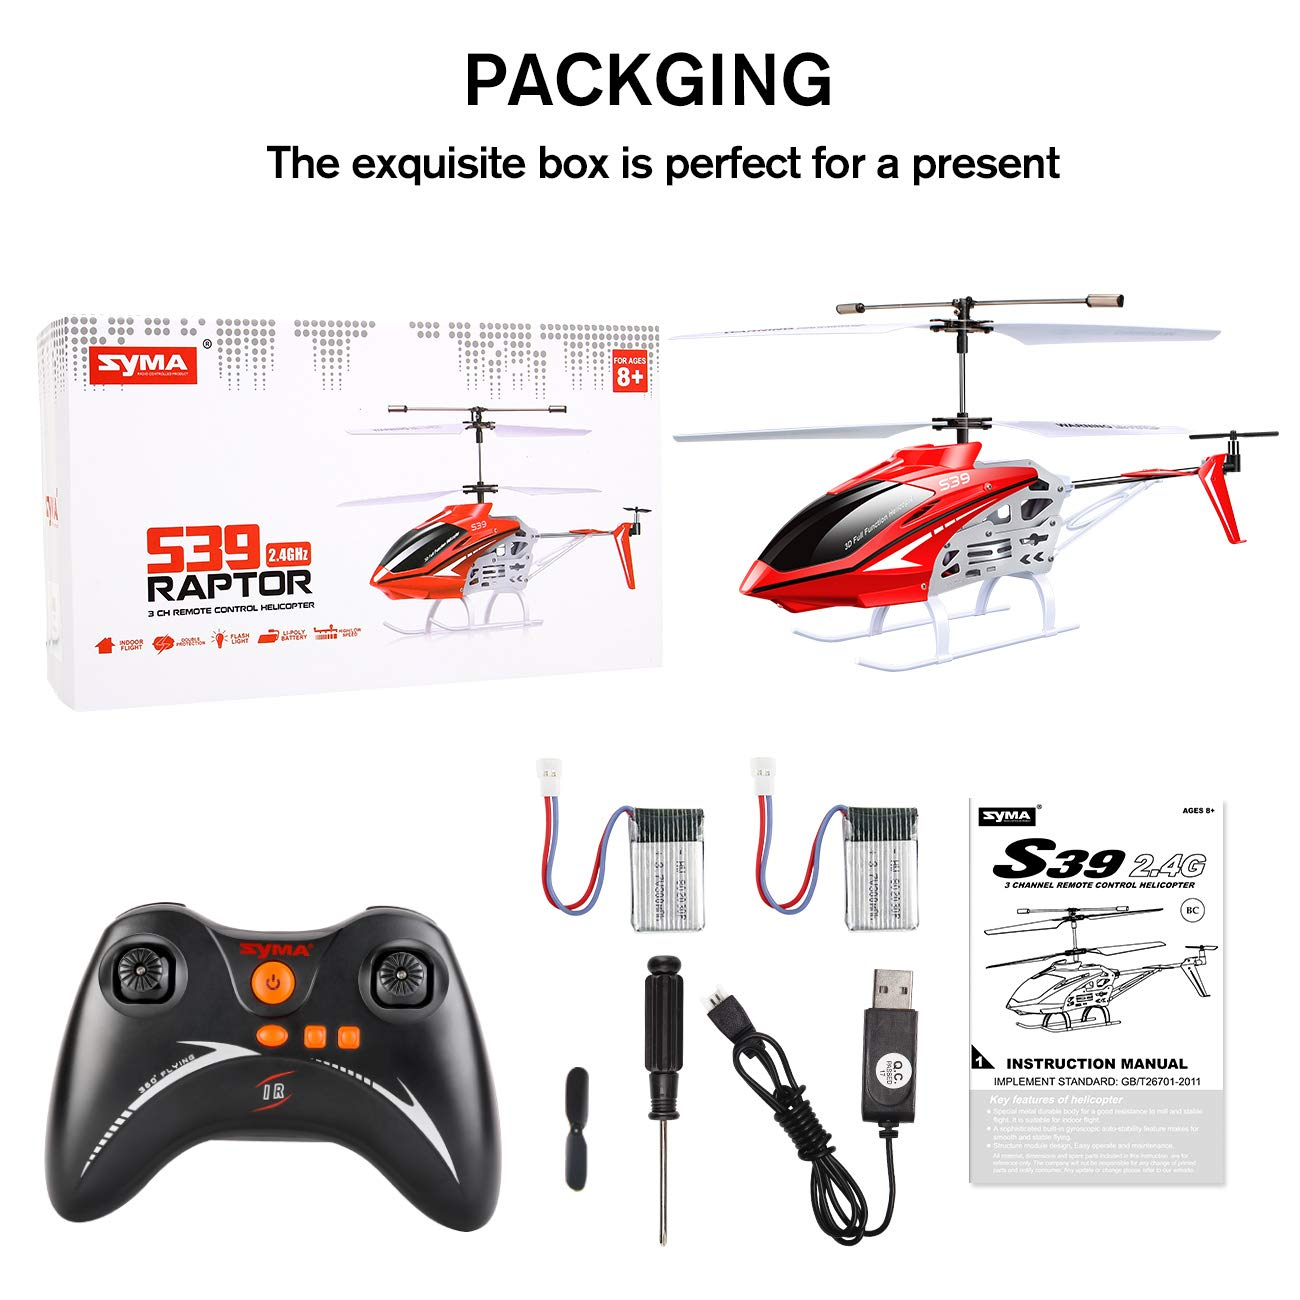 SYMA RC Helicopter, S39 Aircraft with 3.5 Channel,Bigger Size, Sturdy Alloy Material, Gyro Stabilizer and High &Low Speed, Multi-Protection Drone for Kids and Beginners to Play Indoor-Red by SYMA (Image #8)